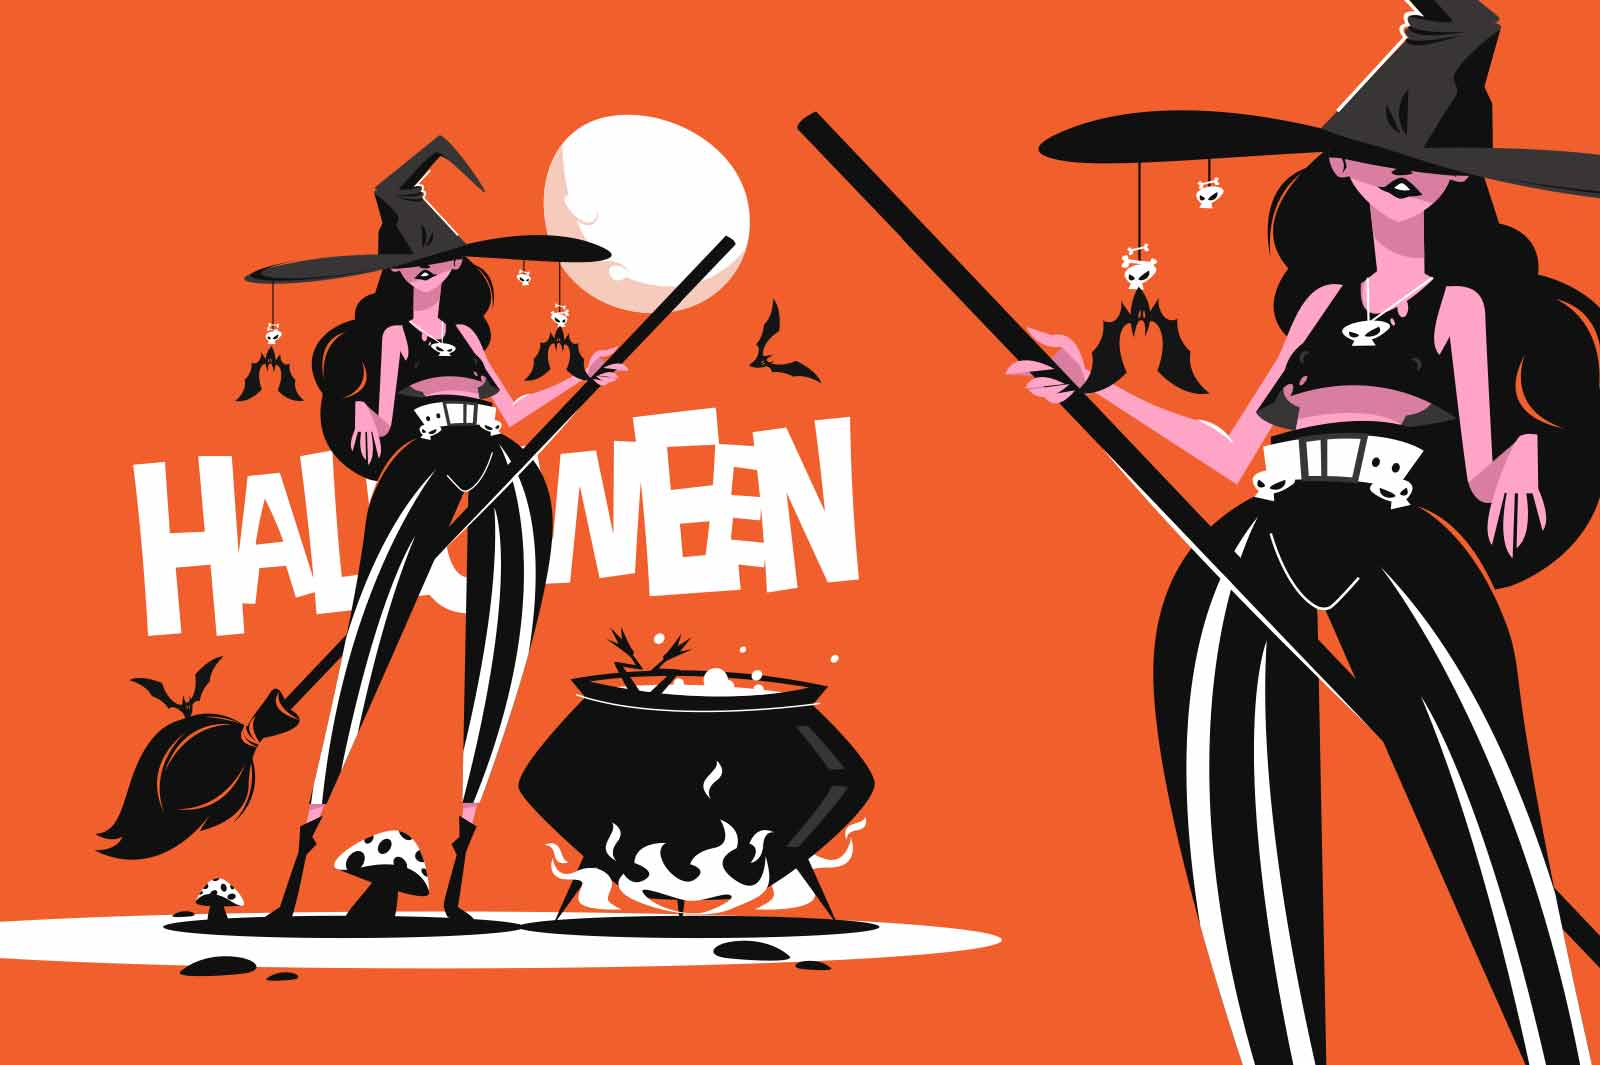 Witch in hat with broom vector illustration. Boiler and creepy atmosphere flat style. Full moon and autumn halloween holiday concept. Isolated on orange background